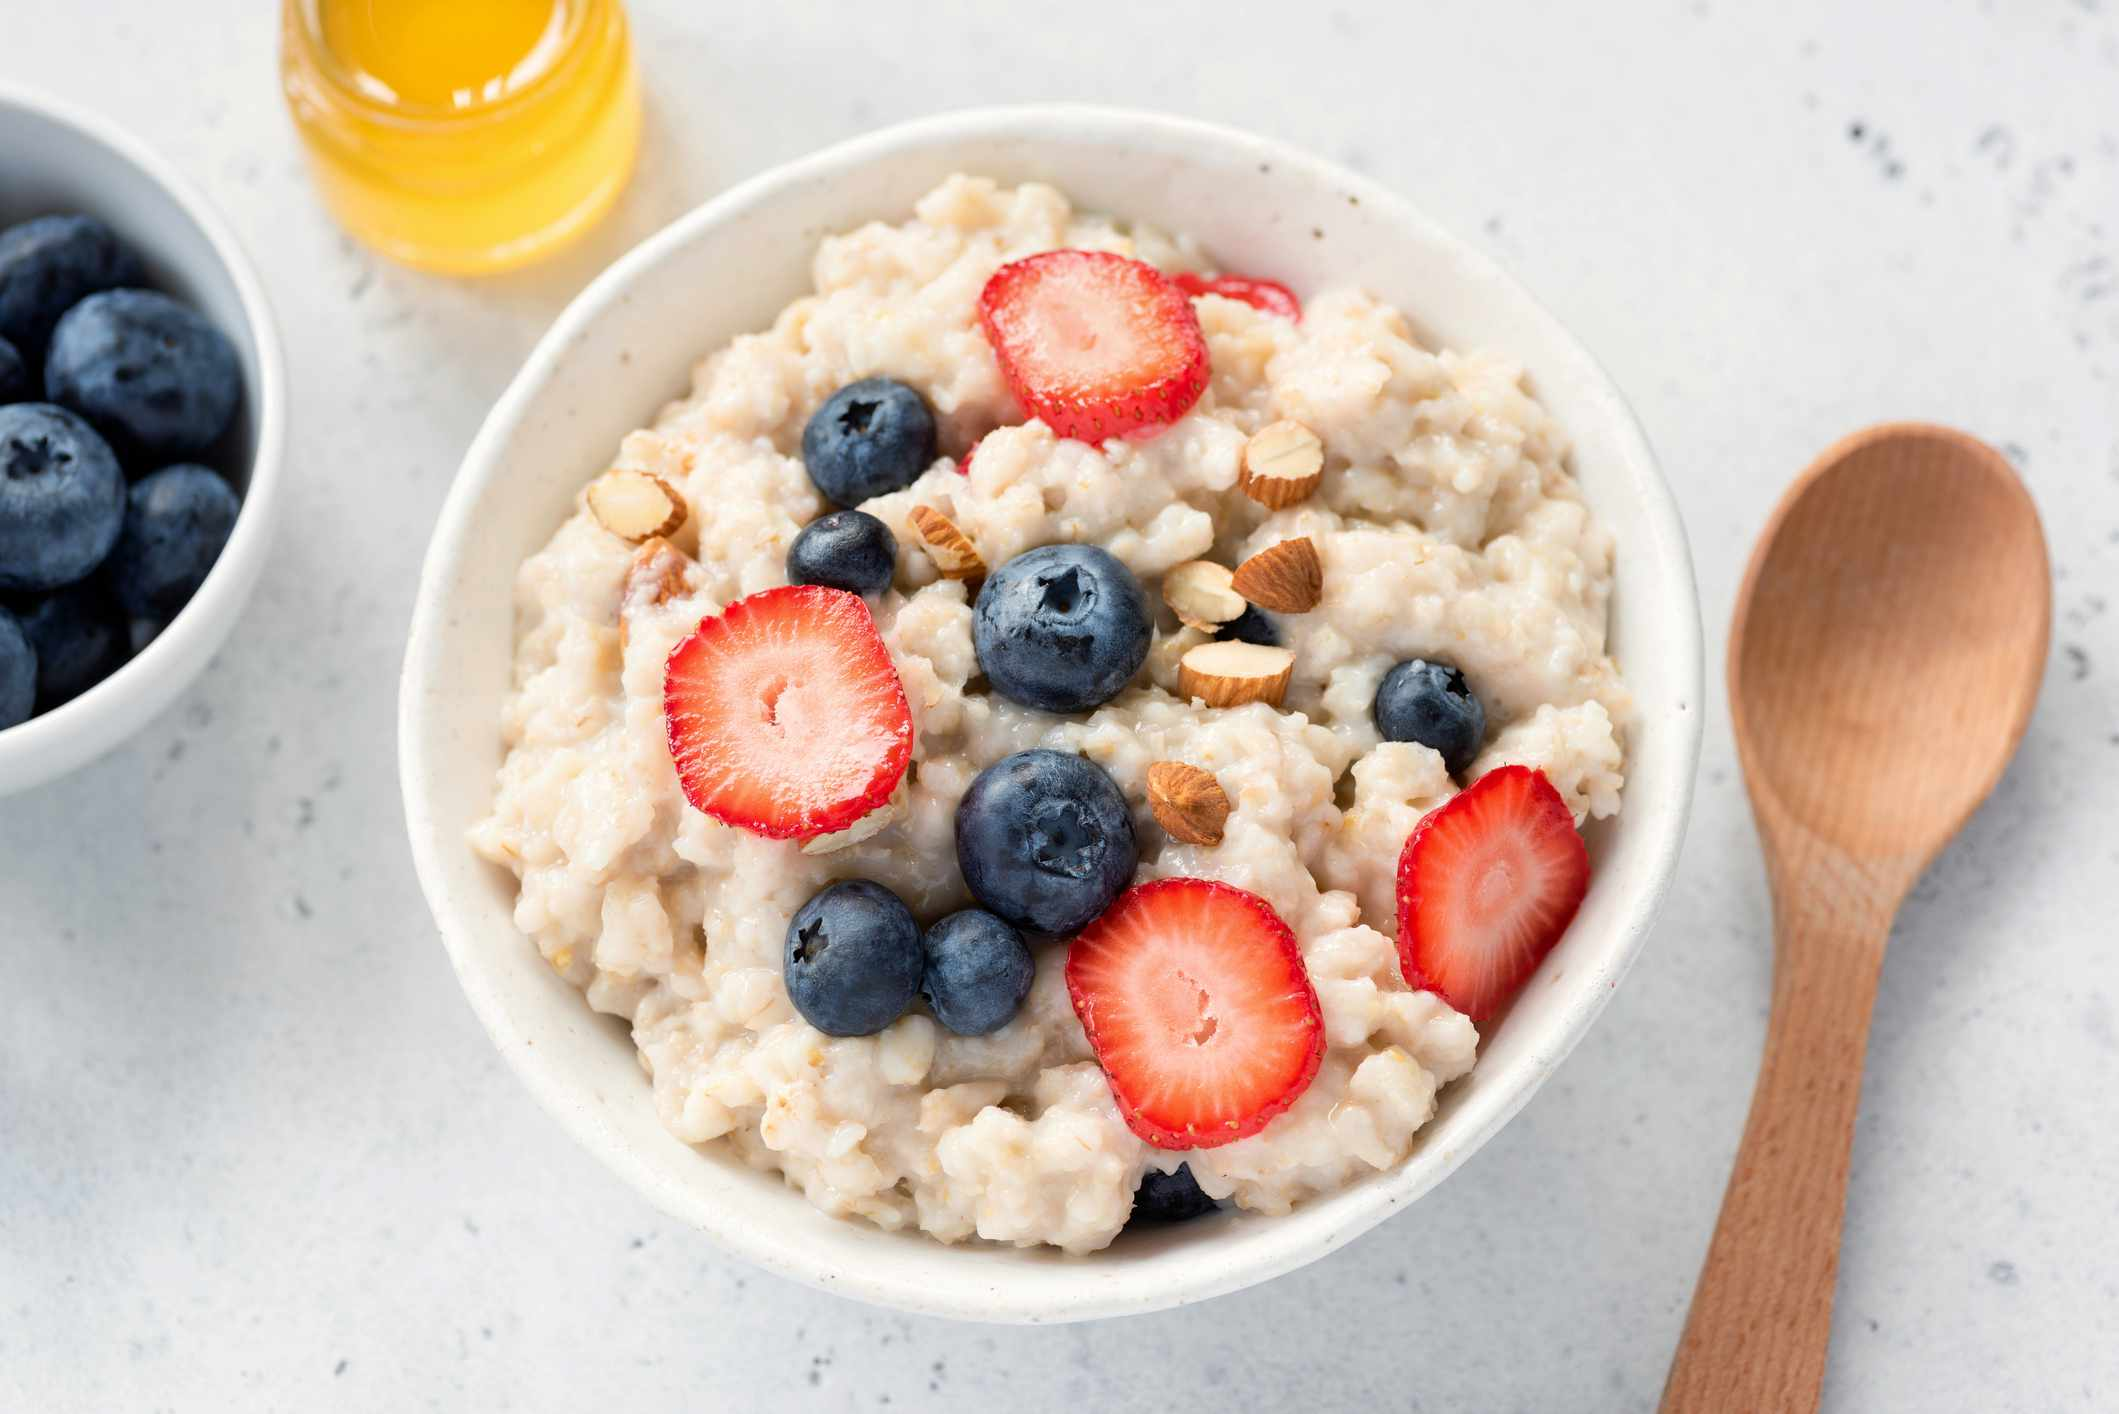 A bowel of oatmeal topped with blueberries, strawberries, and almonds.